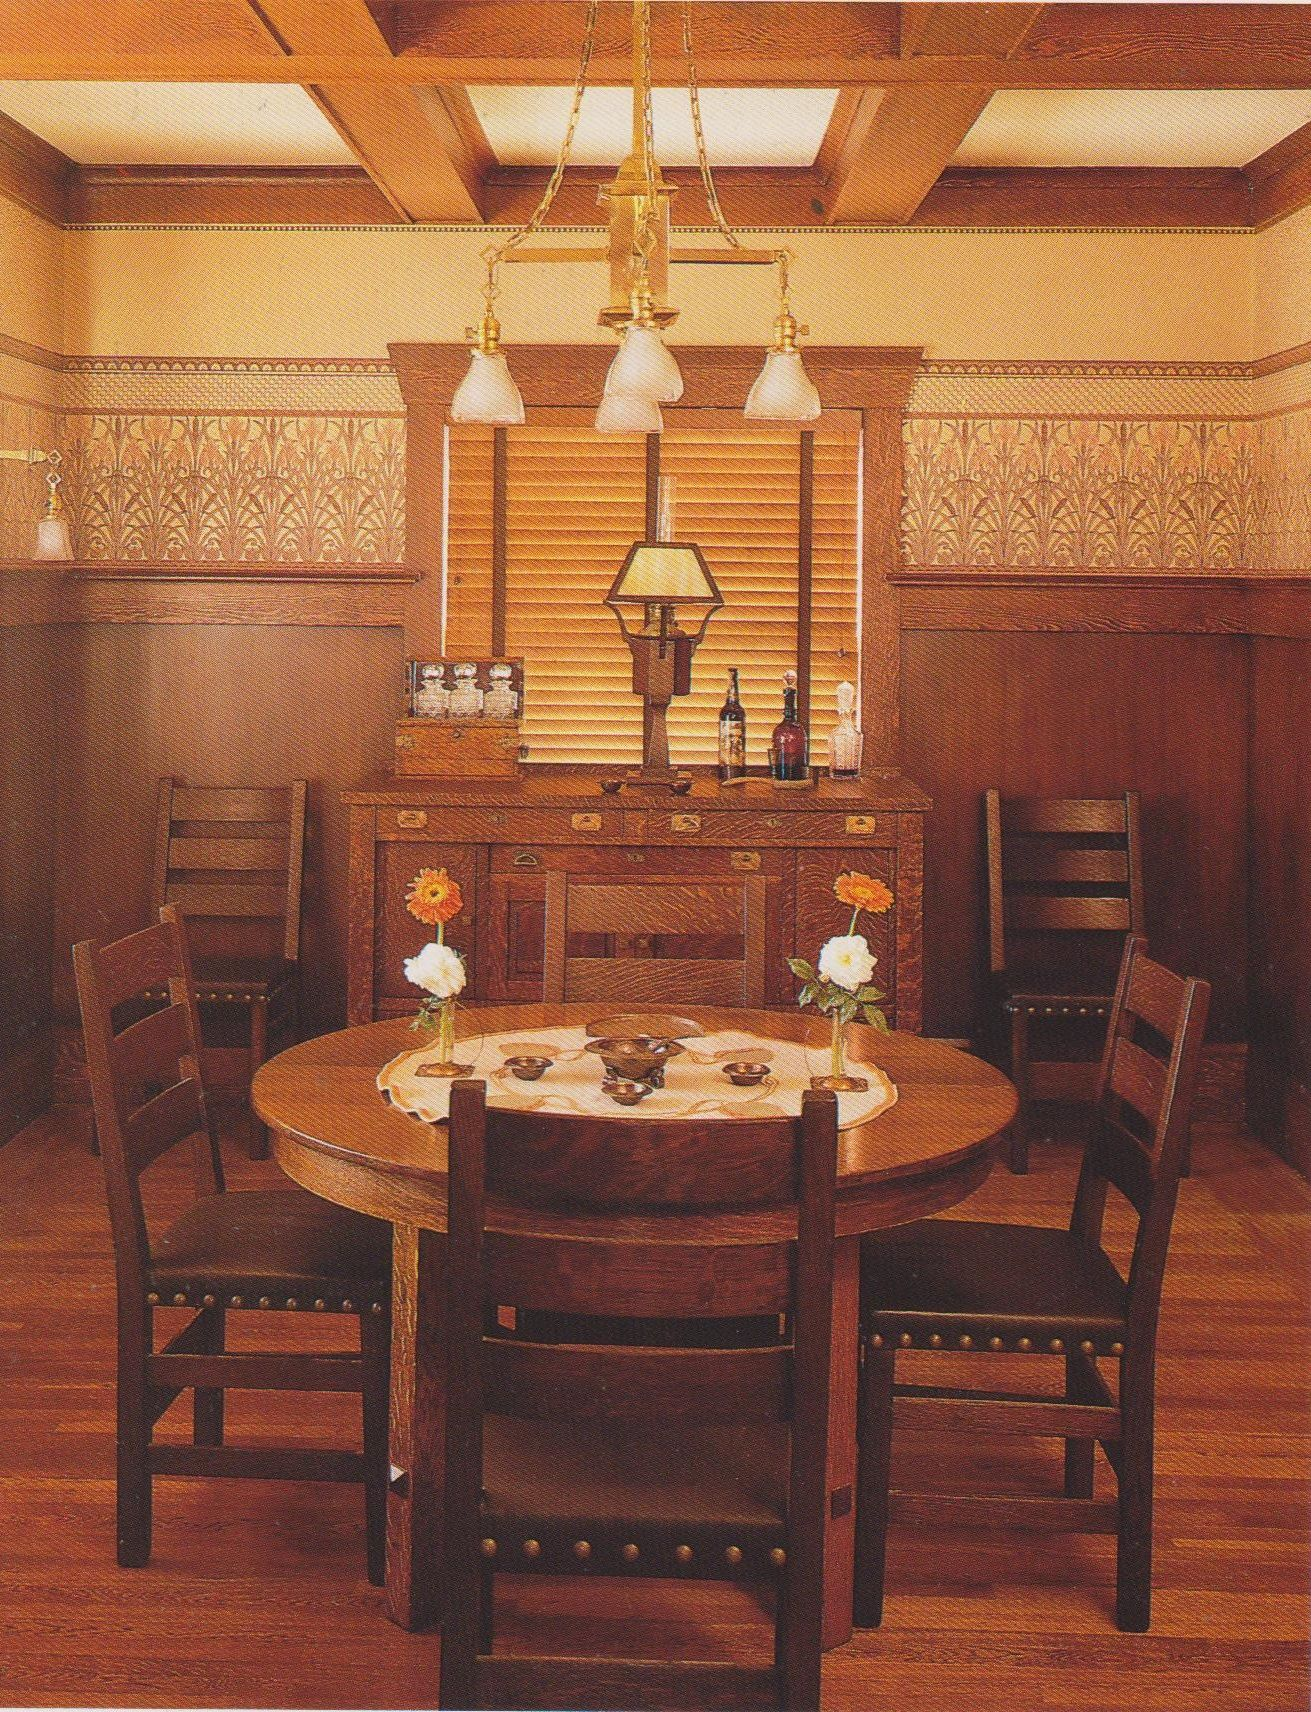 Arts and crafts movement craftsman bungalow mission - Arts and crafts bungalow interiors ...